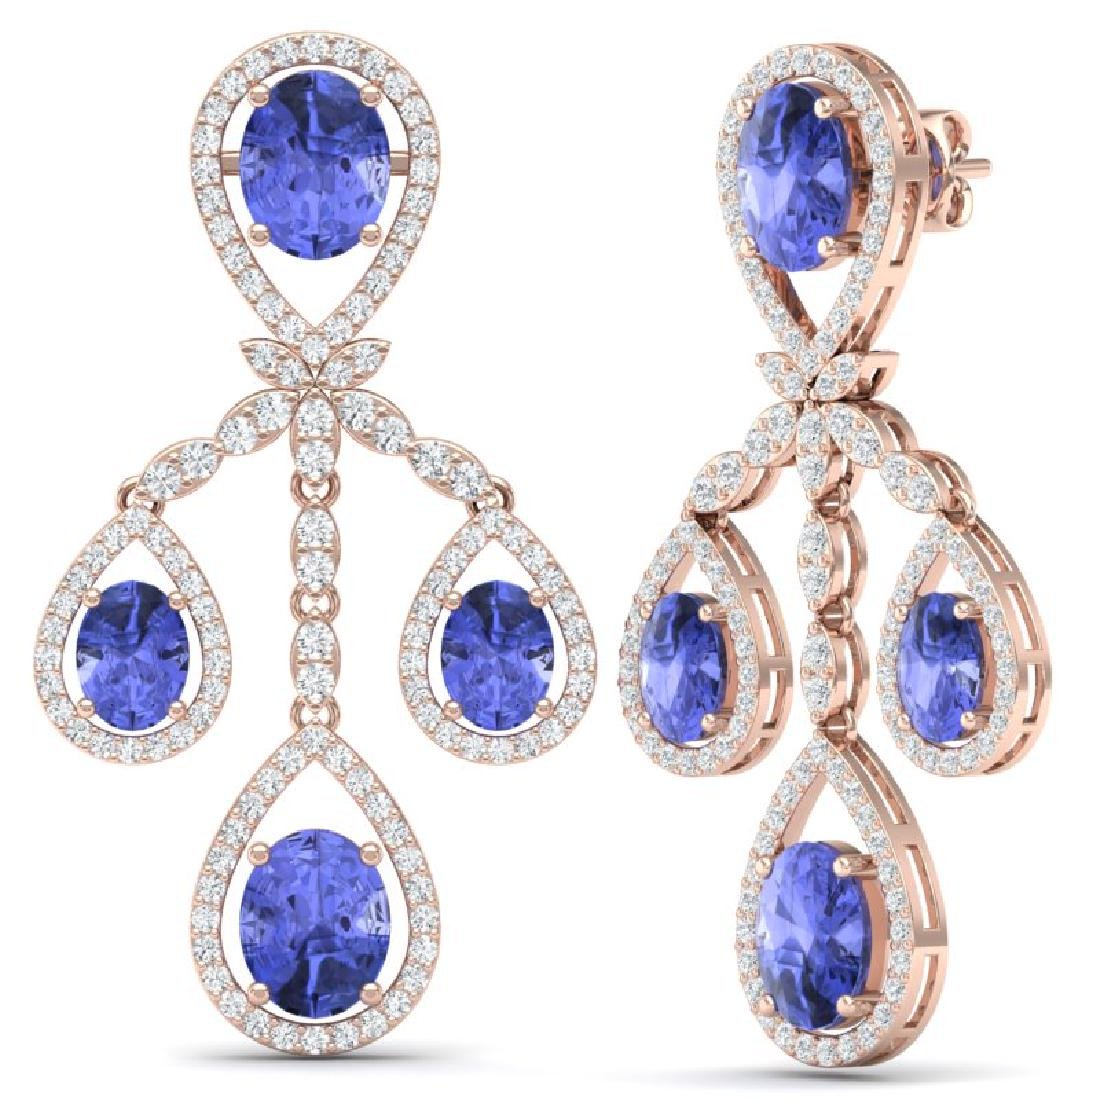 24.89 CTW Royalty Tanzanite & VS Diamond Earrings 18K - 3